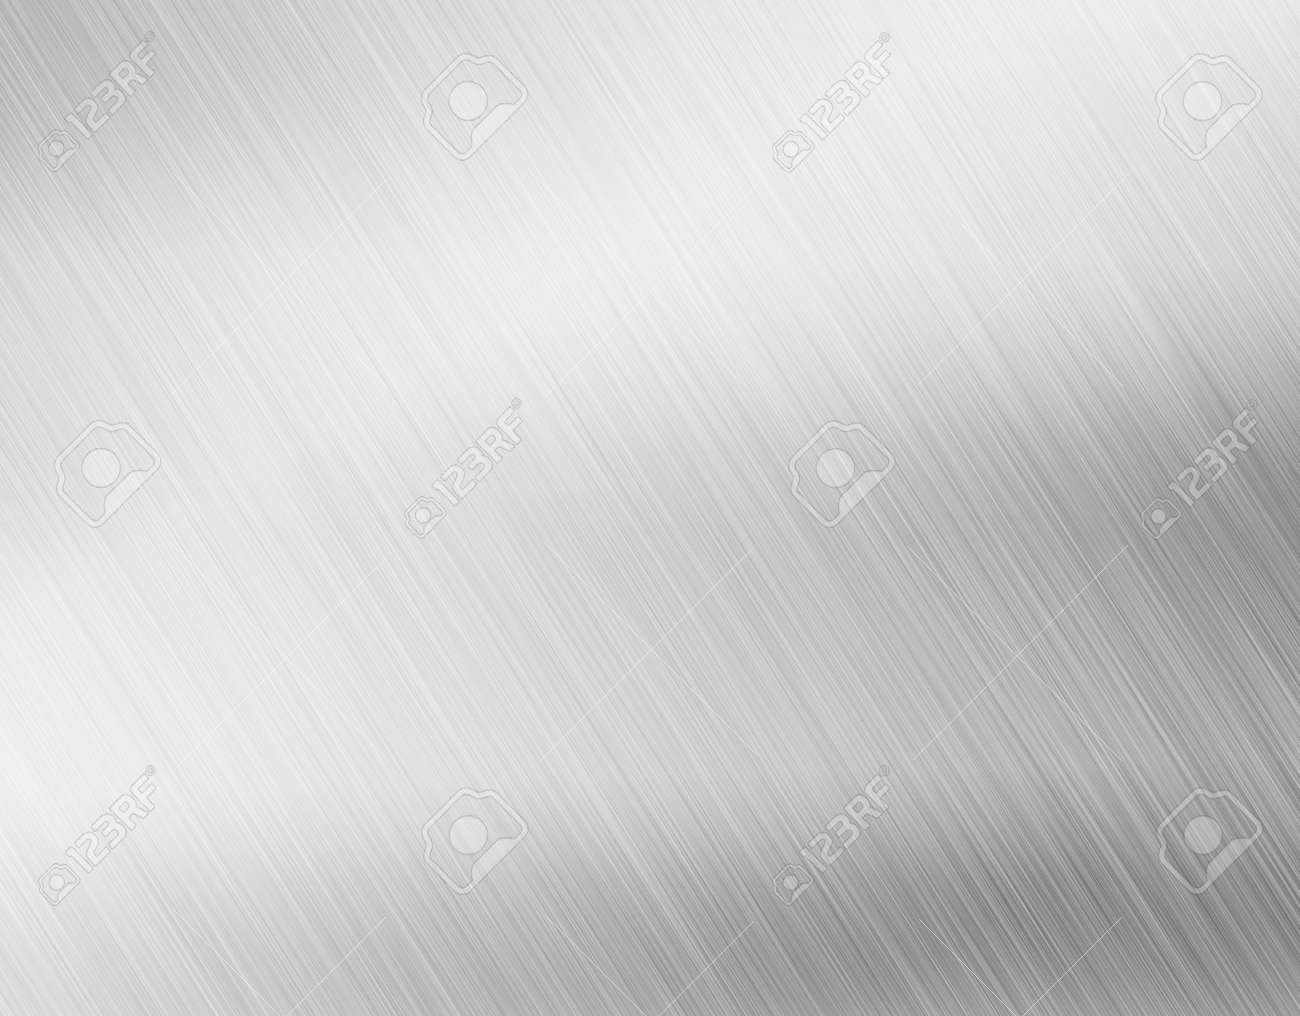 metal, stainless steel texture background with reflection - 139917826